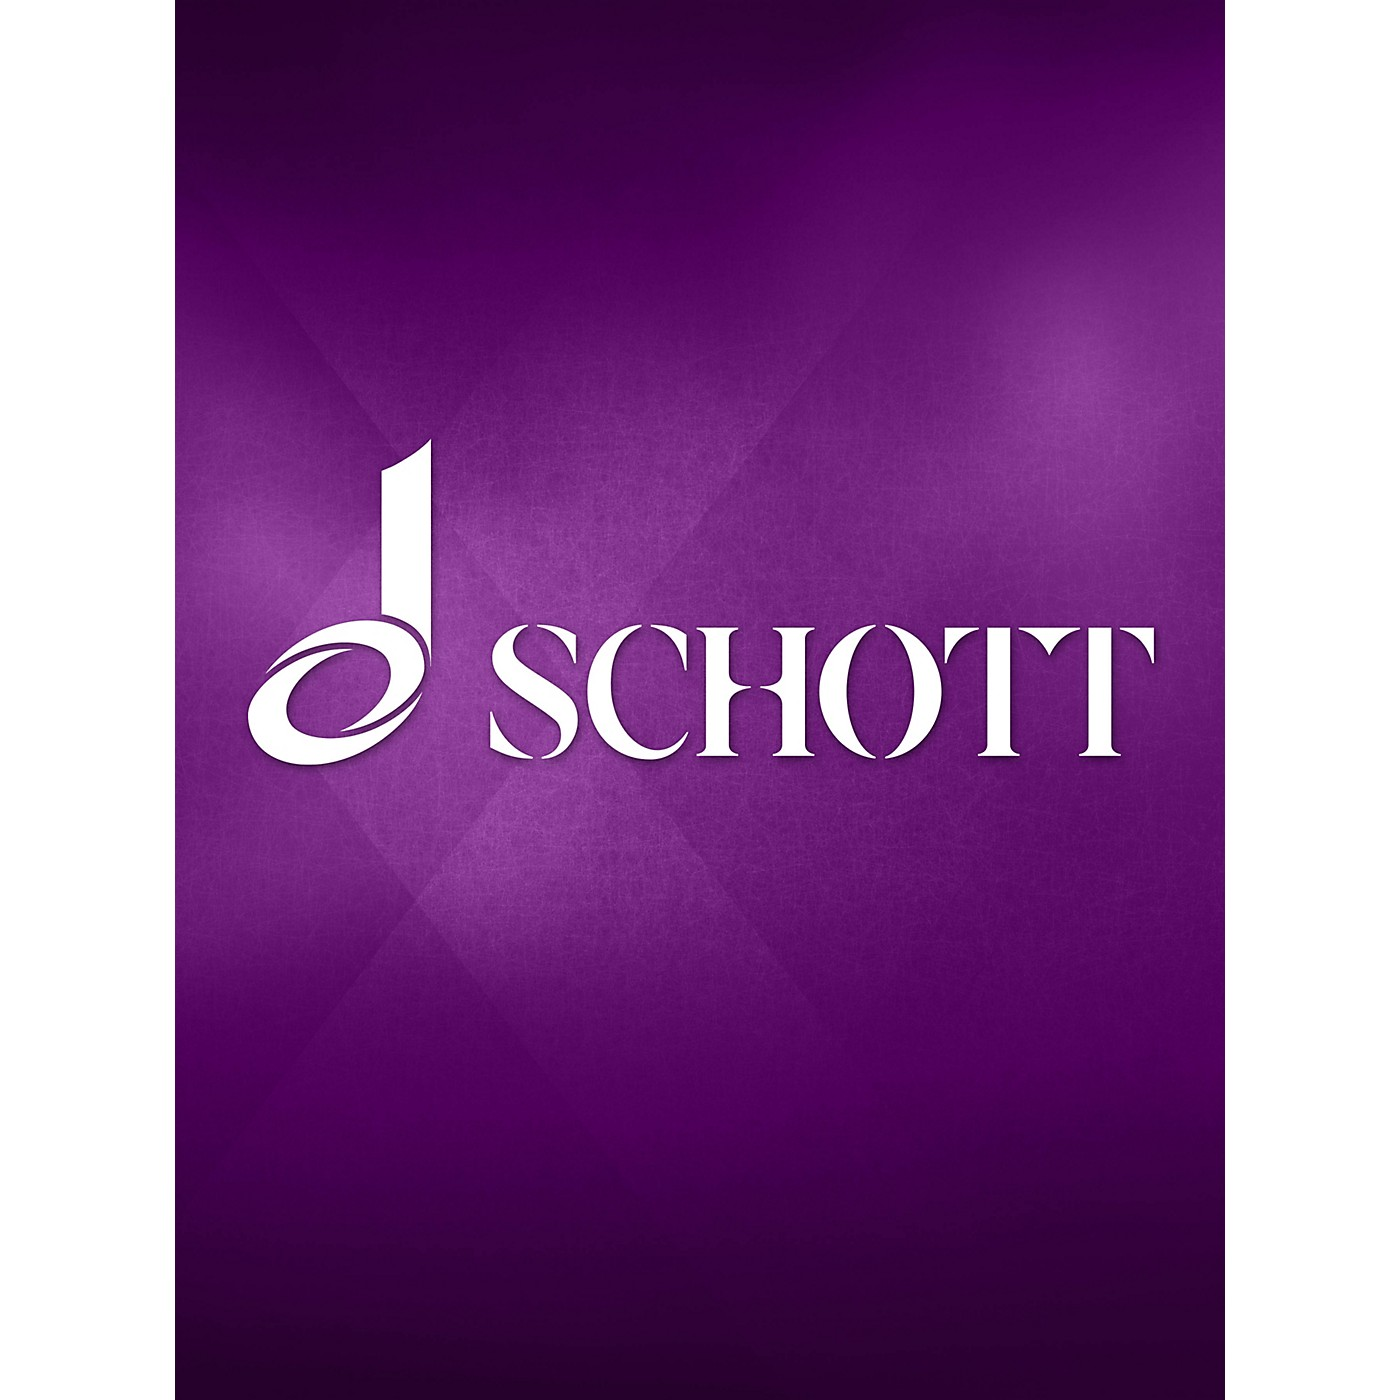 Boelke-Bomart/Schott Trio for Violin, Guitar and Piano (Score) Schott Series Softcover Composed by Arthur Berger thumbnail